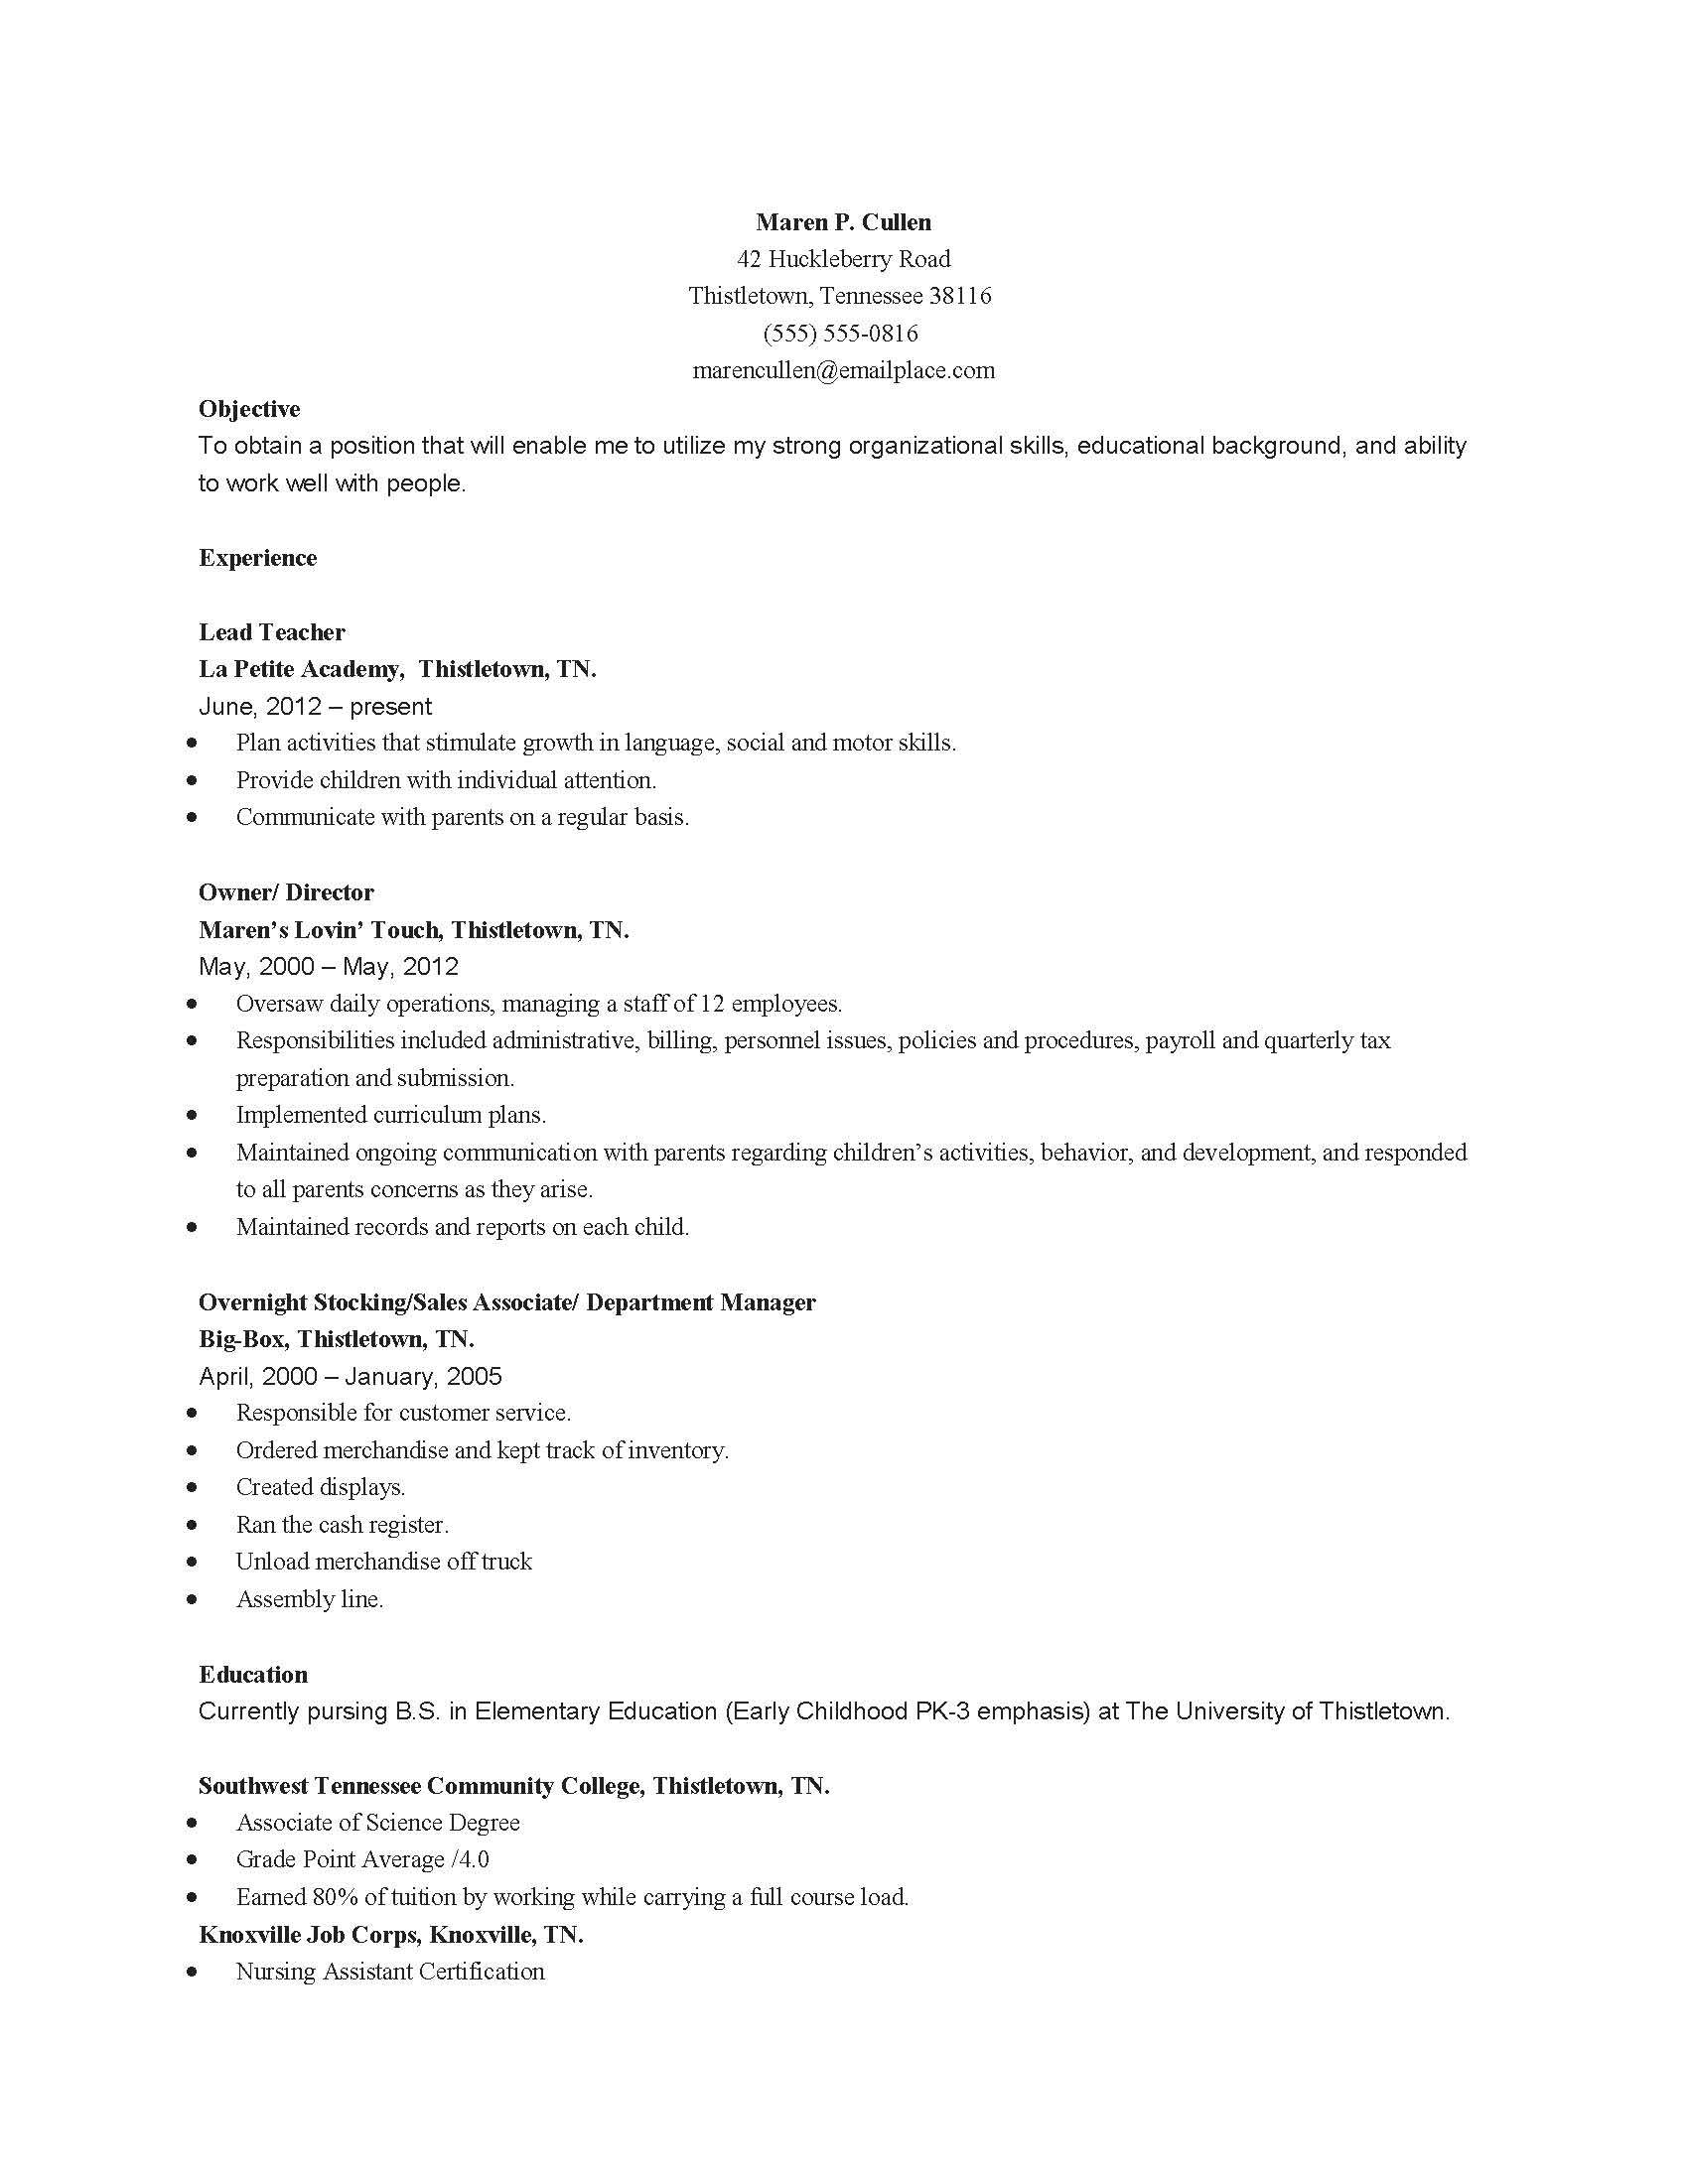 childhood education child care resume sample best examples skills for educator Resume Early Childhood Education Skills Resume